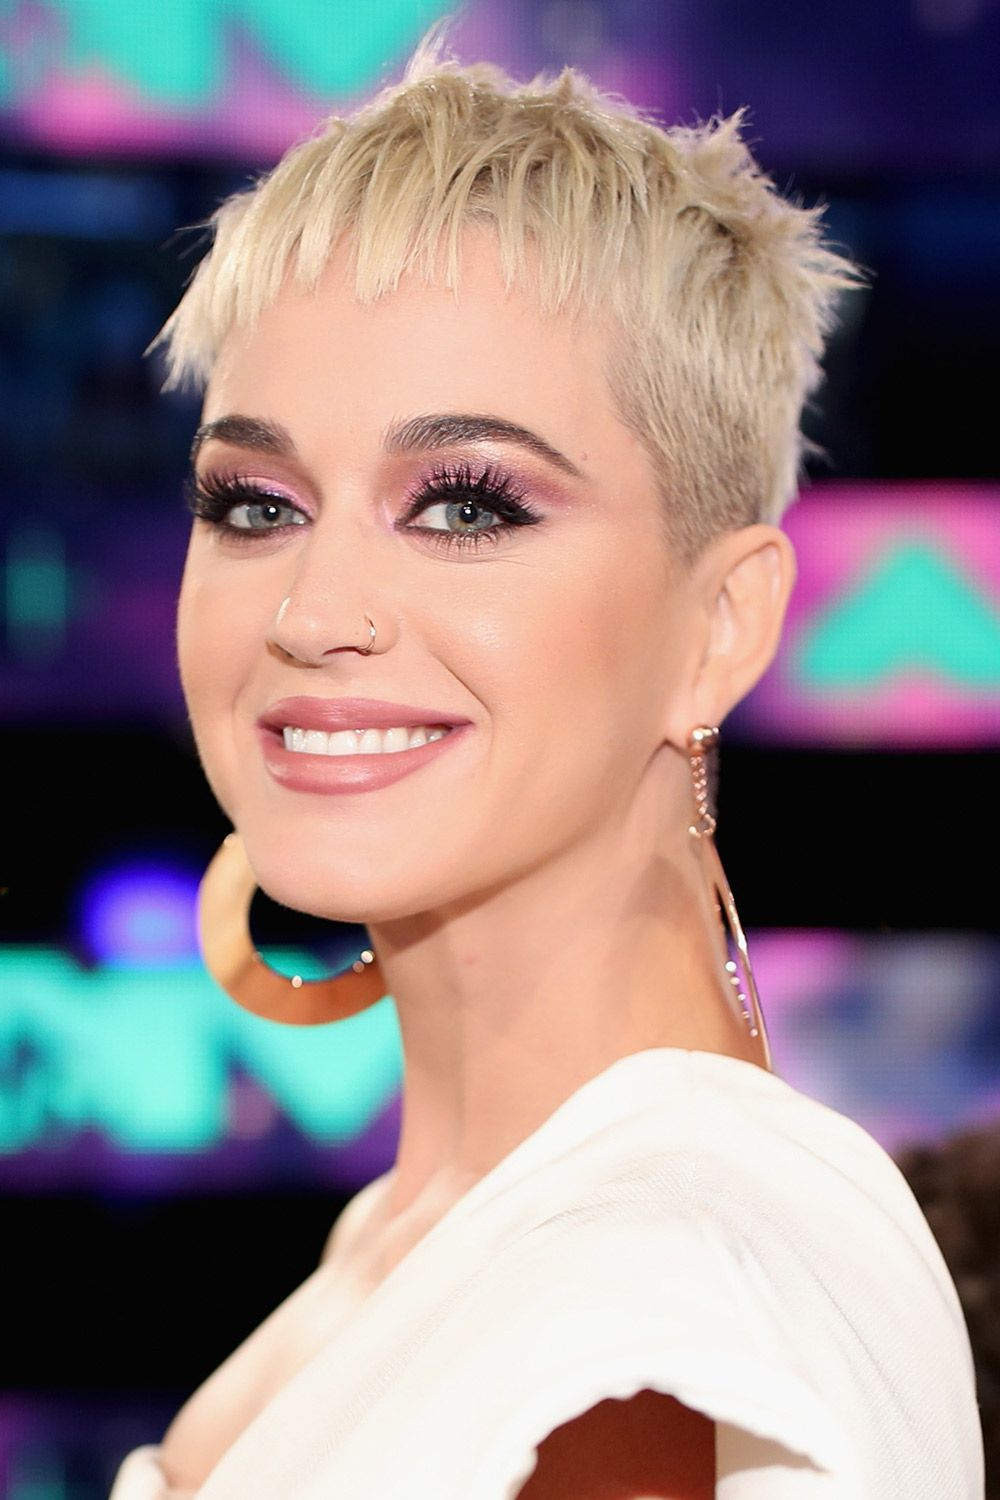 65 Best Short Hairstyles, Haircuts, And Short Hair Ideas For 2018 With Regard To Celebrities Short Haircuts (View 13 of 25)